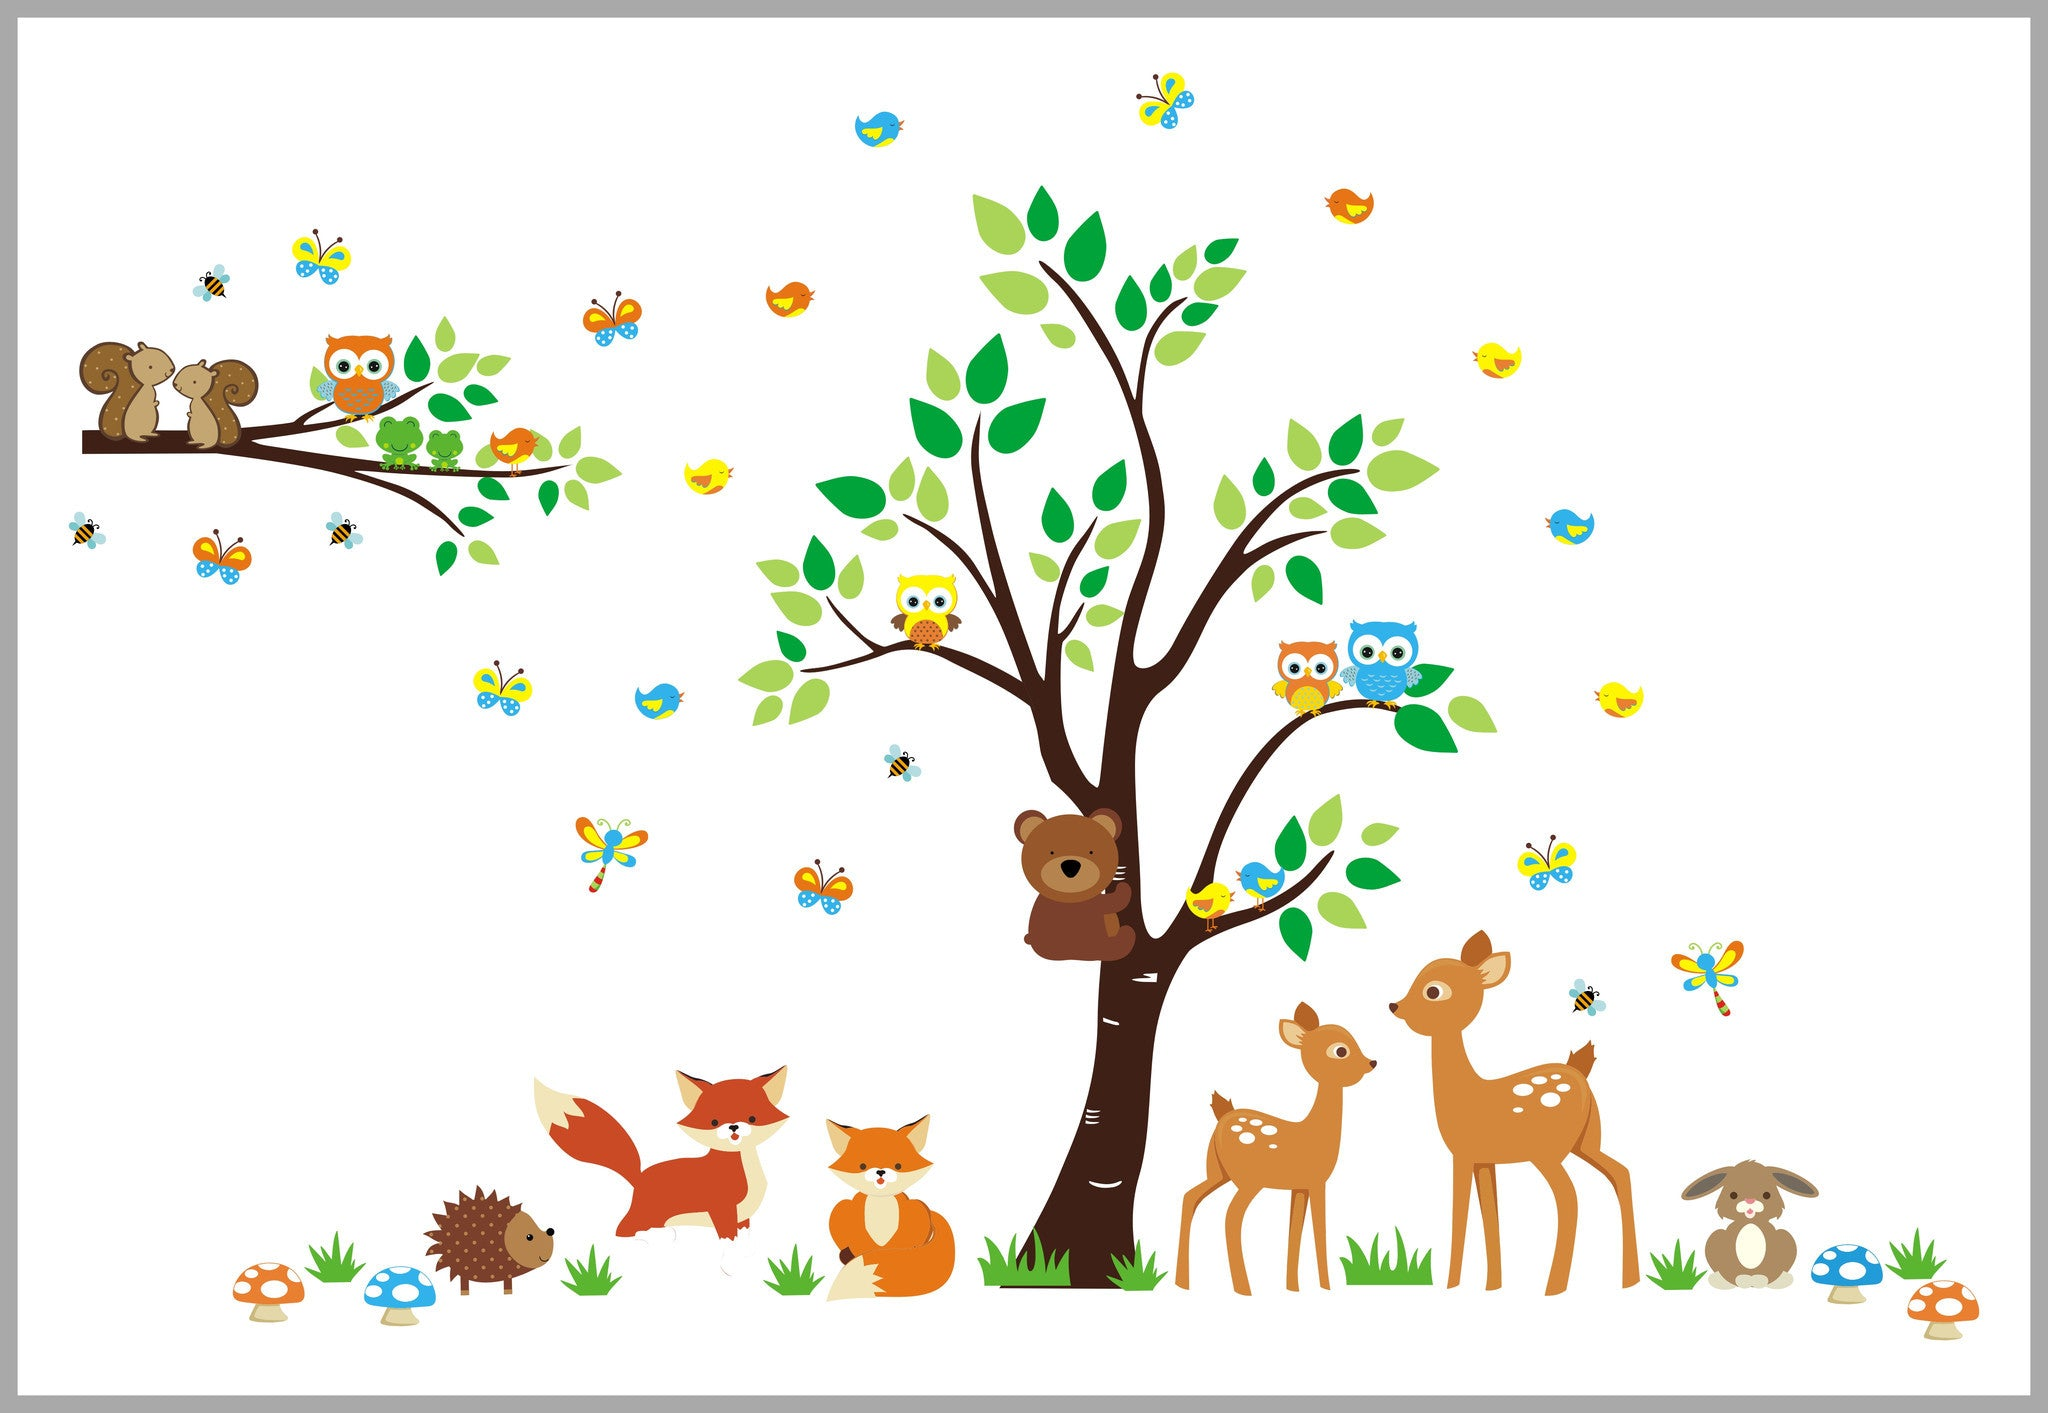 Forest Woodland Wall Decals Baby Room Fox Deer Rabbit Tree. Sweet Deer and Fox Woodland Decal   Nursery Room Decor   Large